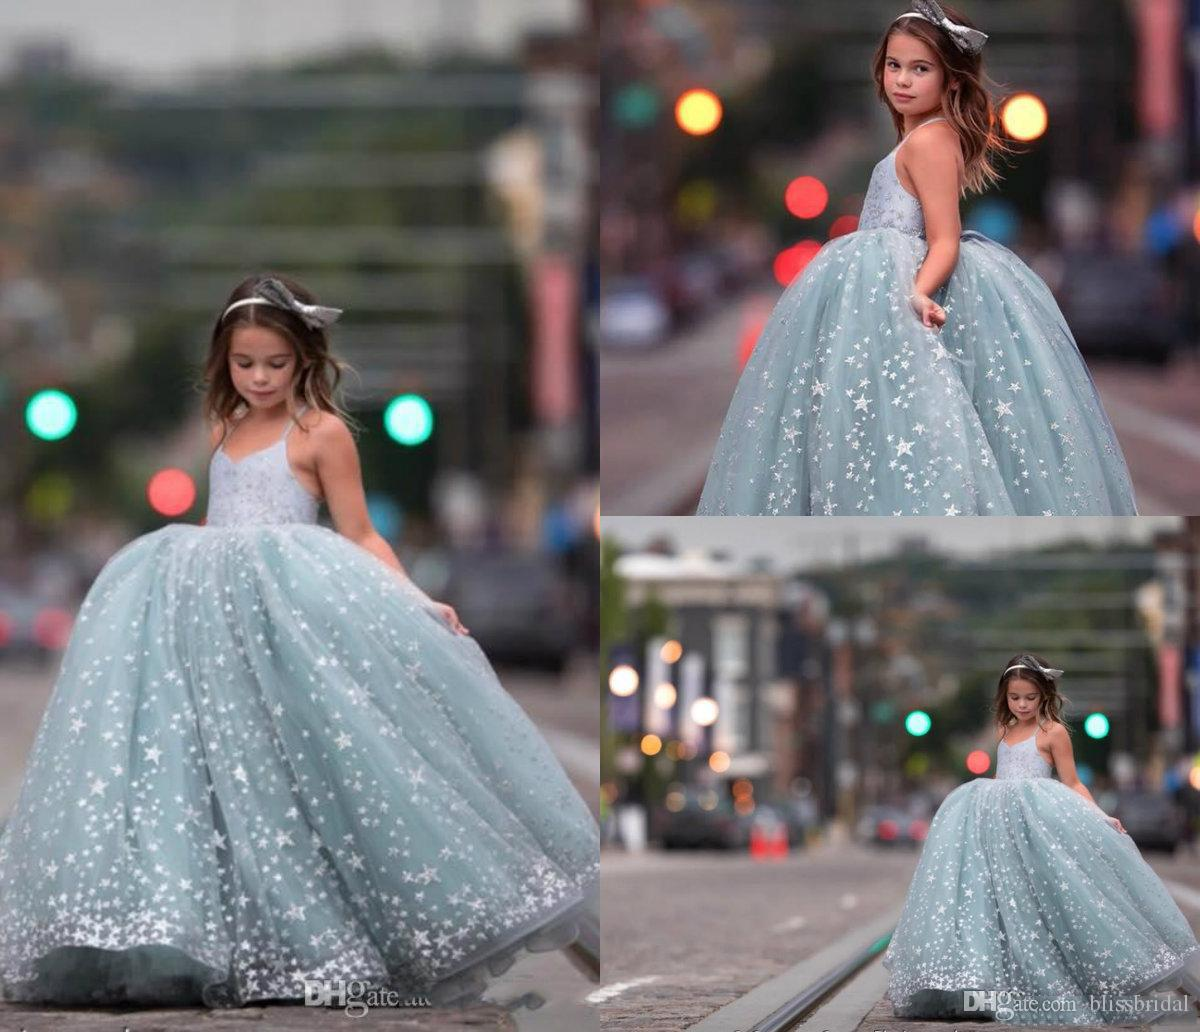 dcb4c497a74 Dusty Blue Princess Flower Girls Dresses Spaghetti Star Appliqued Layers  Ball Gown Girls Pageant Dress Custom Formal Kids Gowns Tulle Flower Girl  Dresses ...